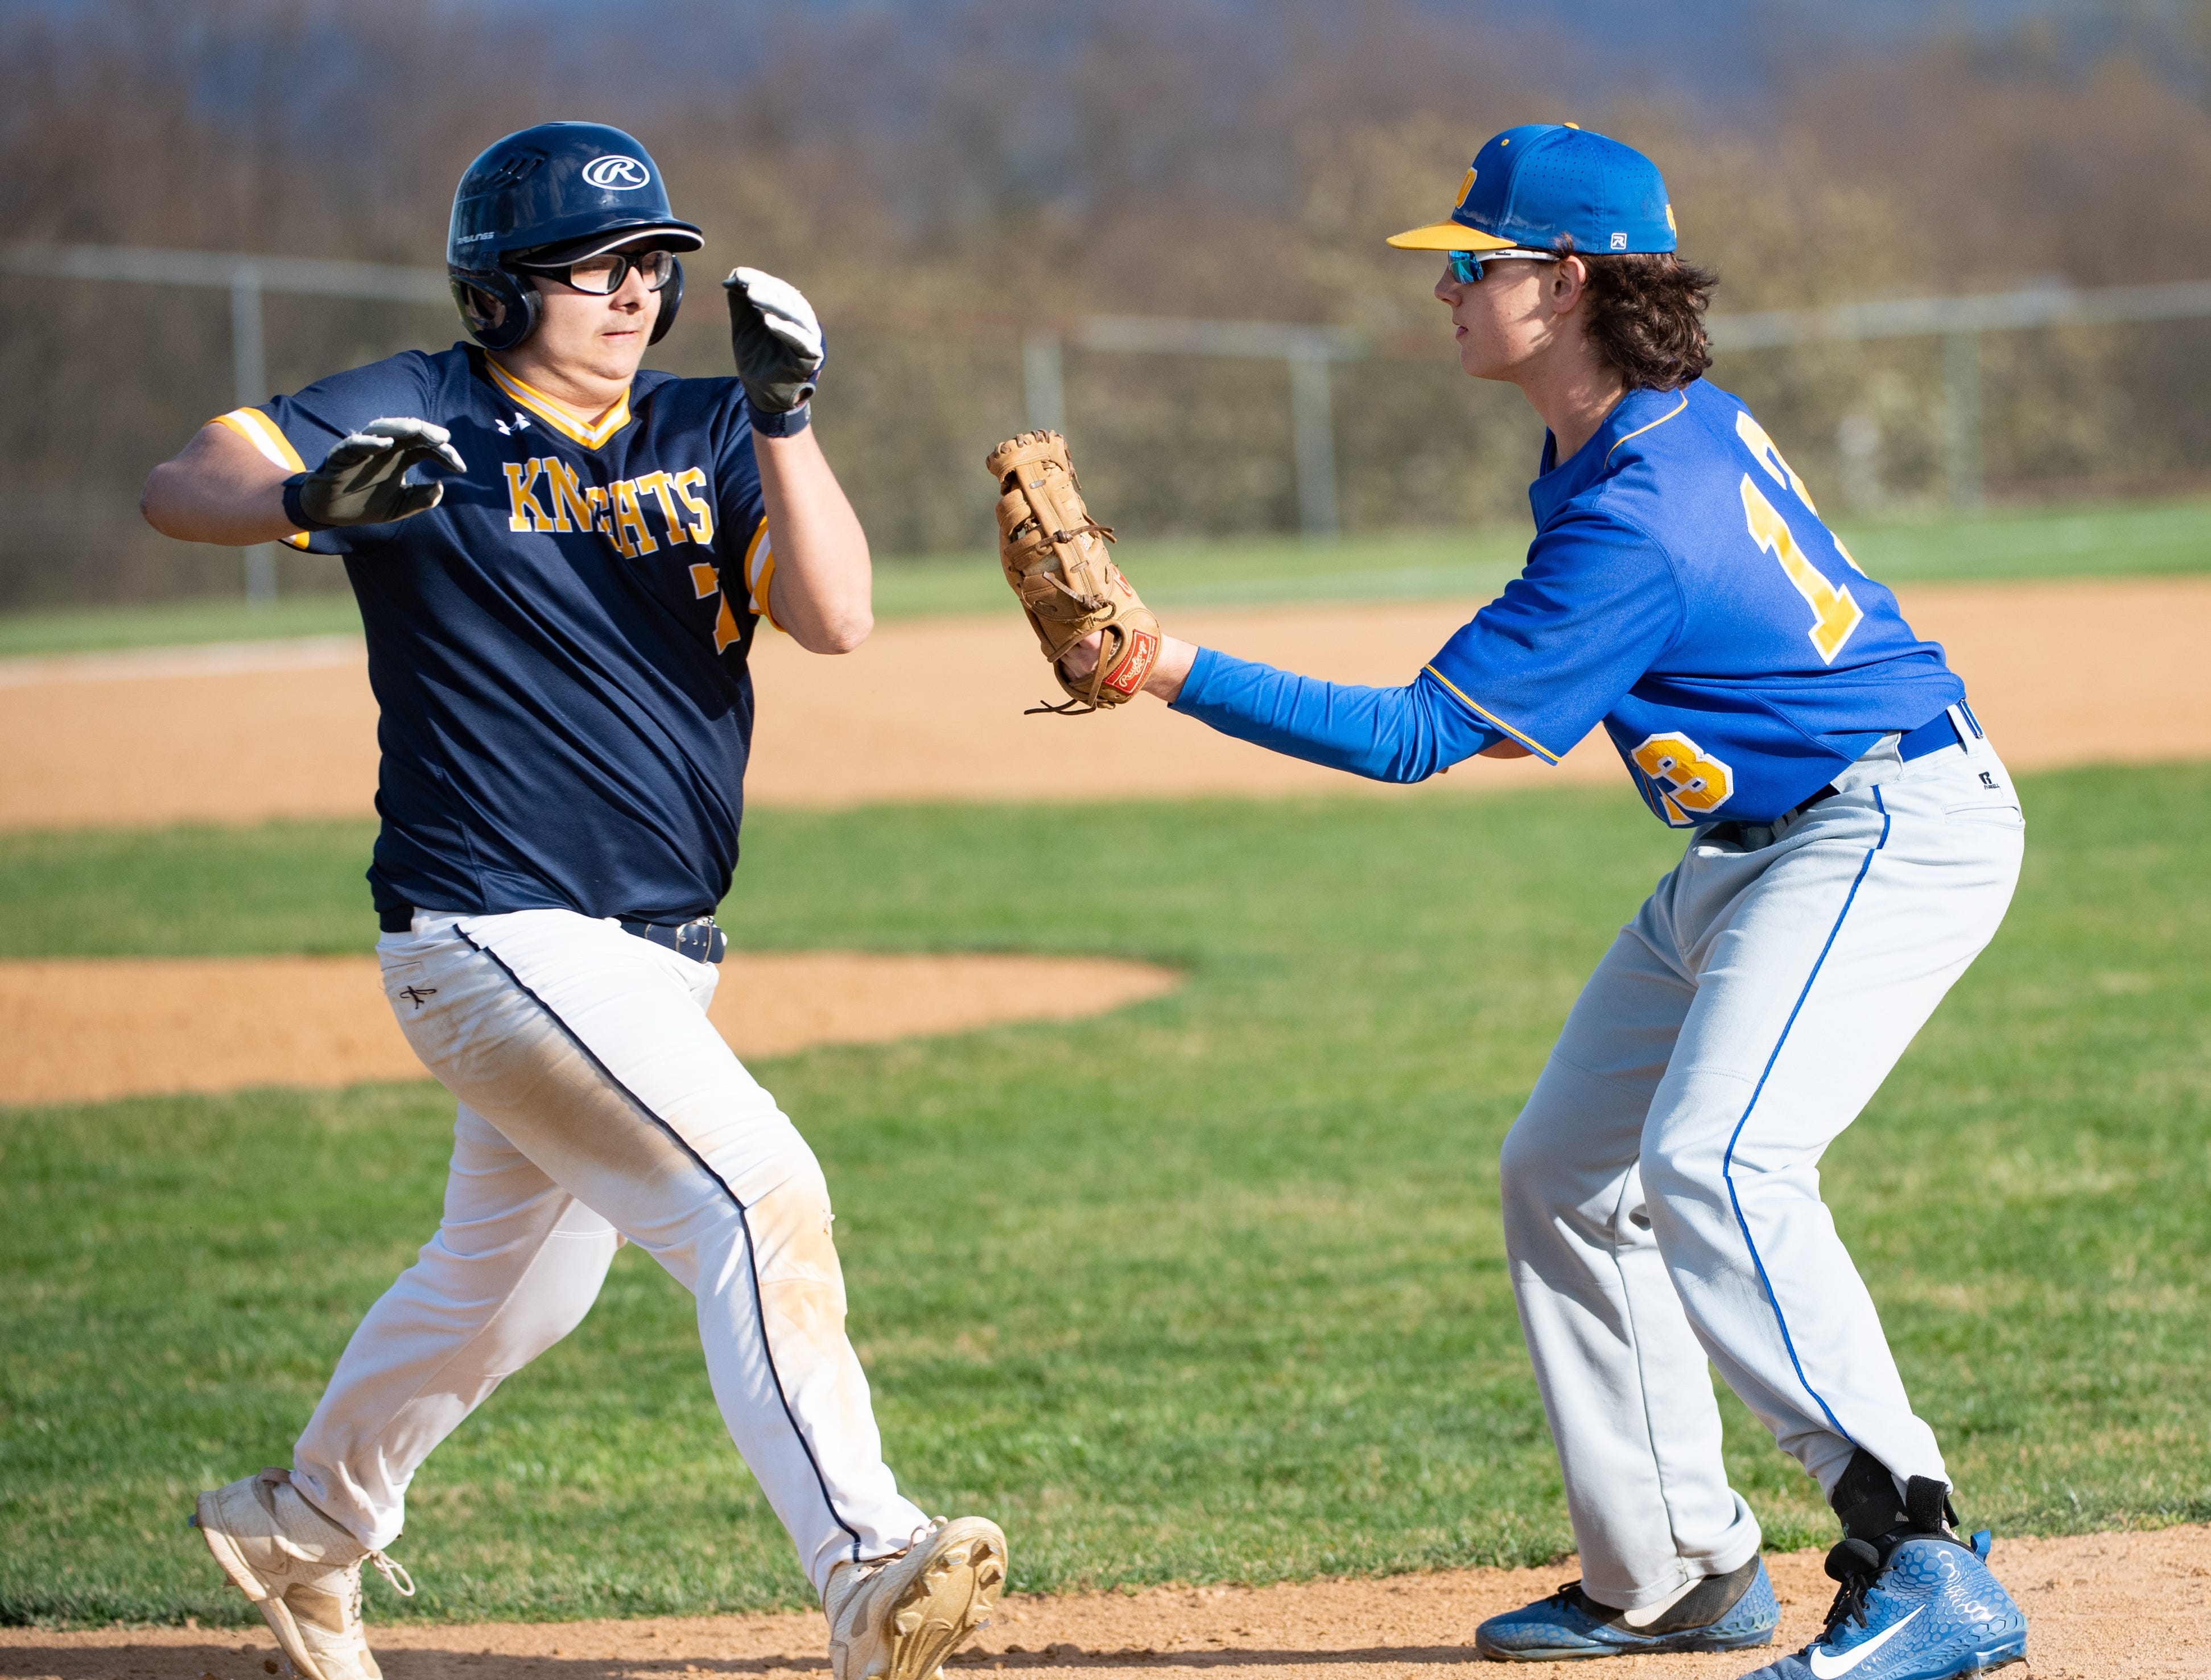 Ryan Schubert (13) tags out Quinton McNew (7) during the baseball game between Eastern York and Kennard-Dale, April 10, 2019 at Eastern York High School. The Golden Knights defeated the Rams 8 to 1.